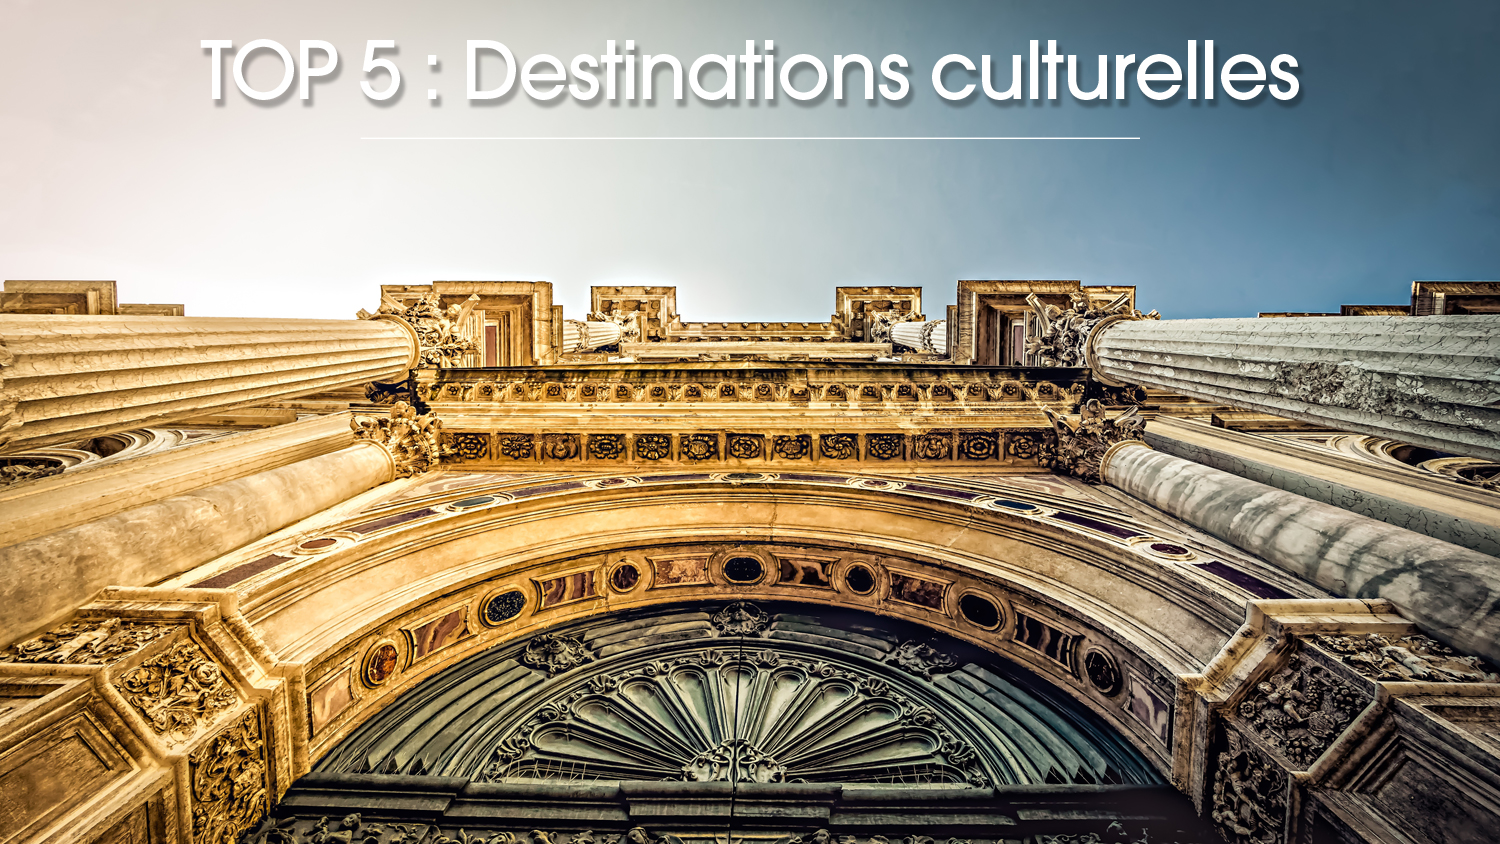 ../uploads/top-5-destinations-culturelles.jpg